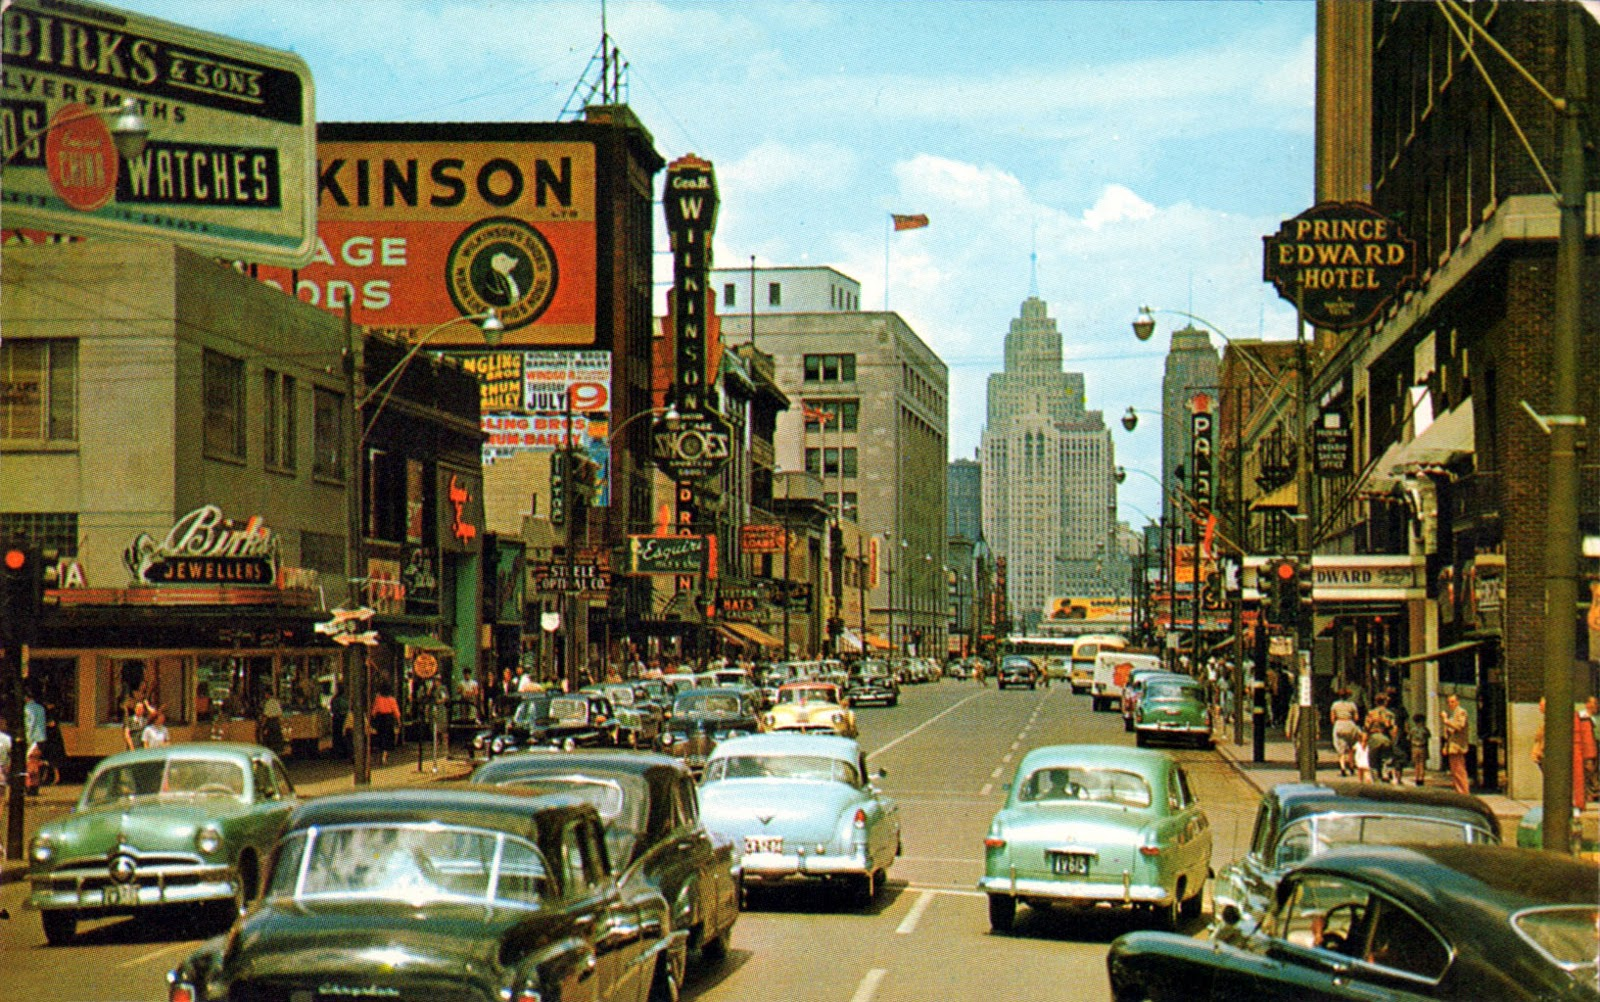 transpress nz: Windsor, Ontario, then and now